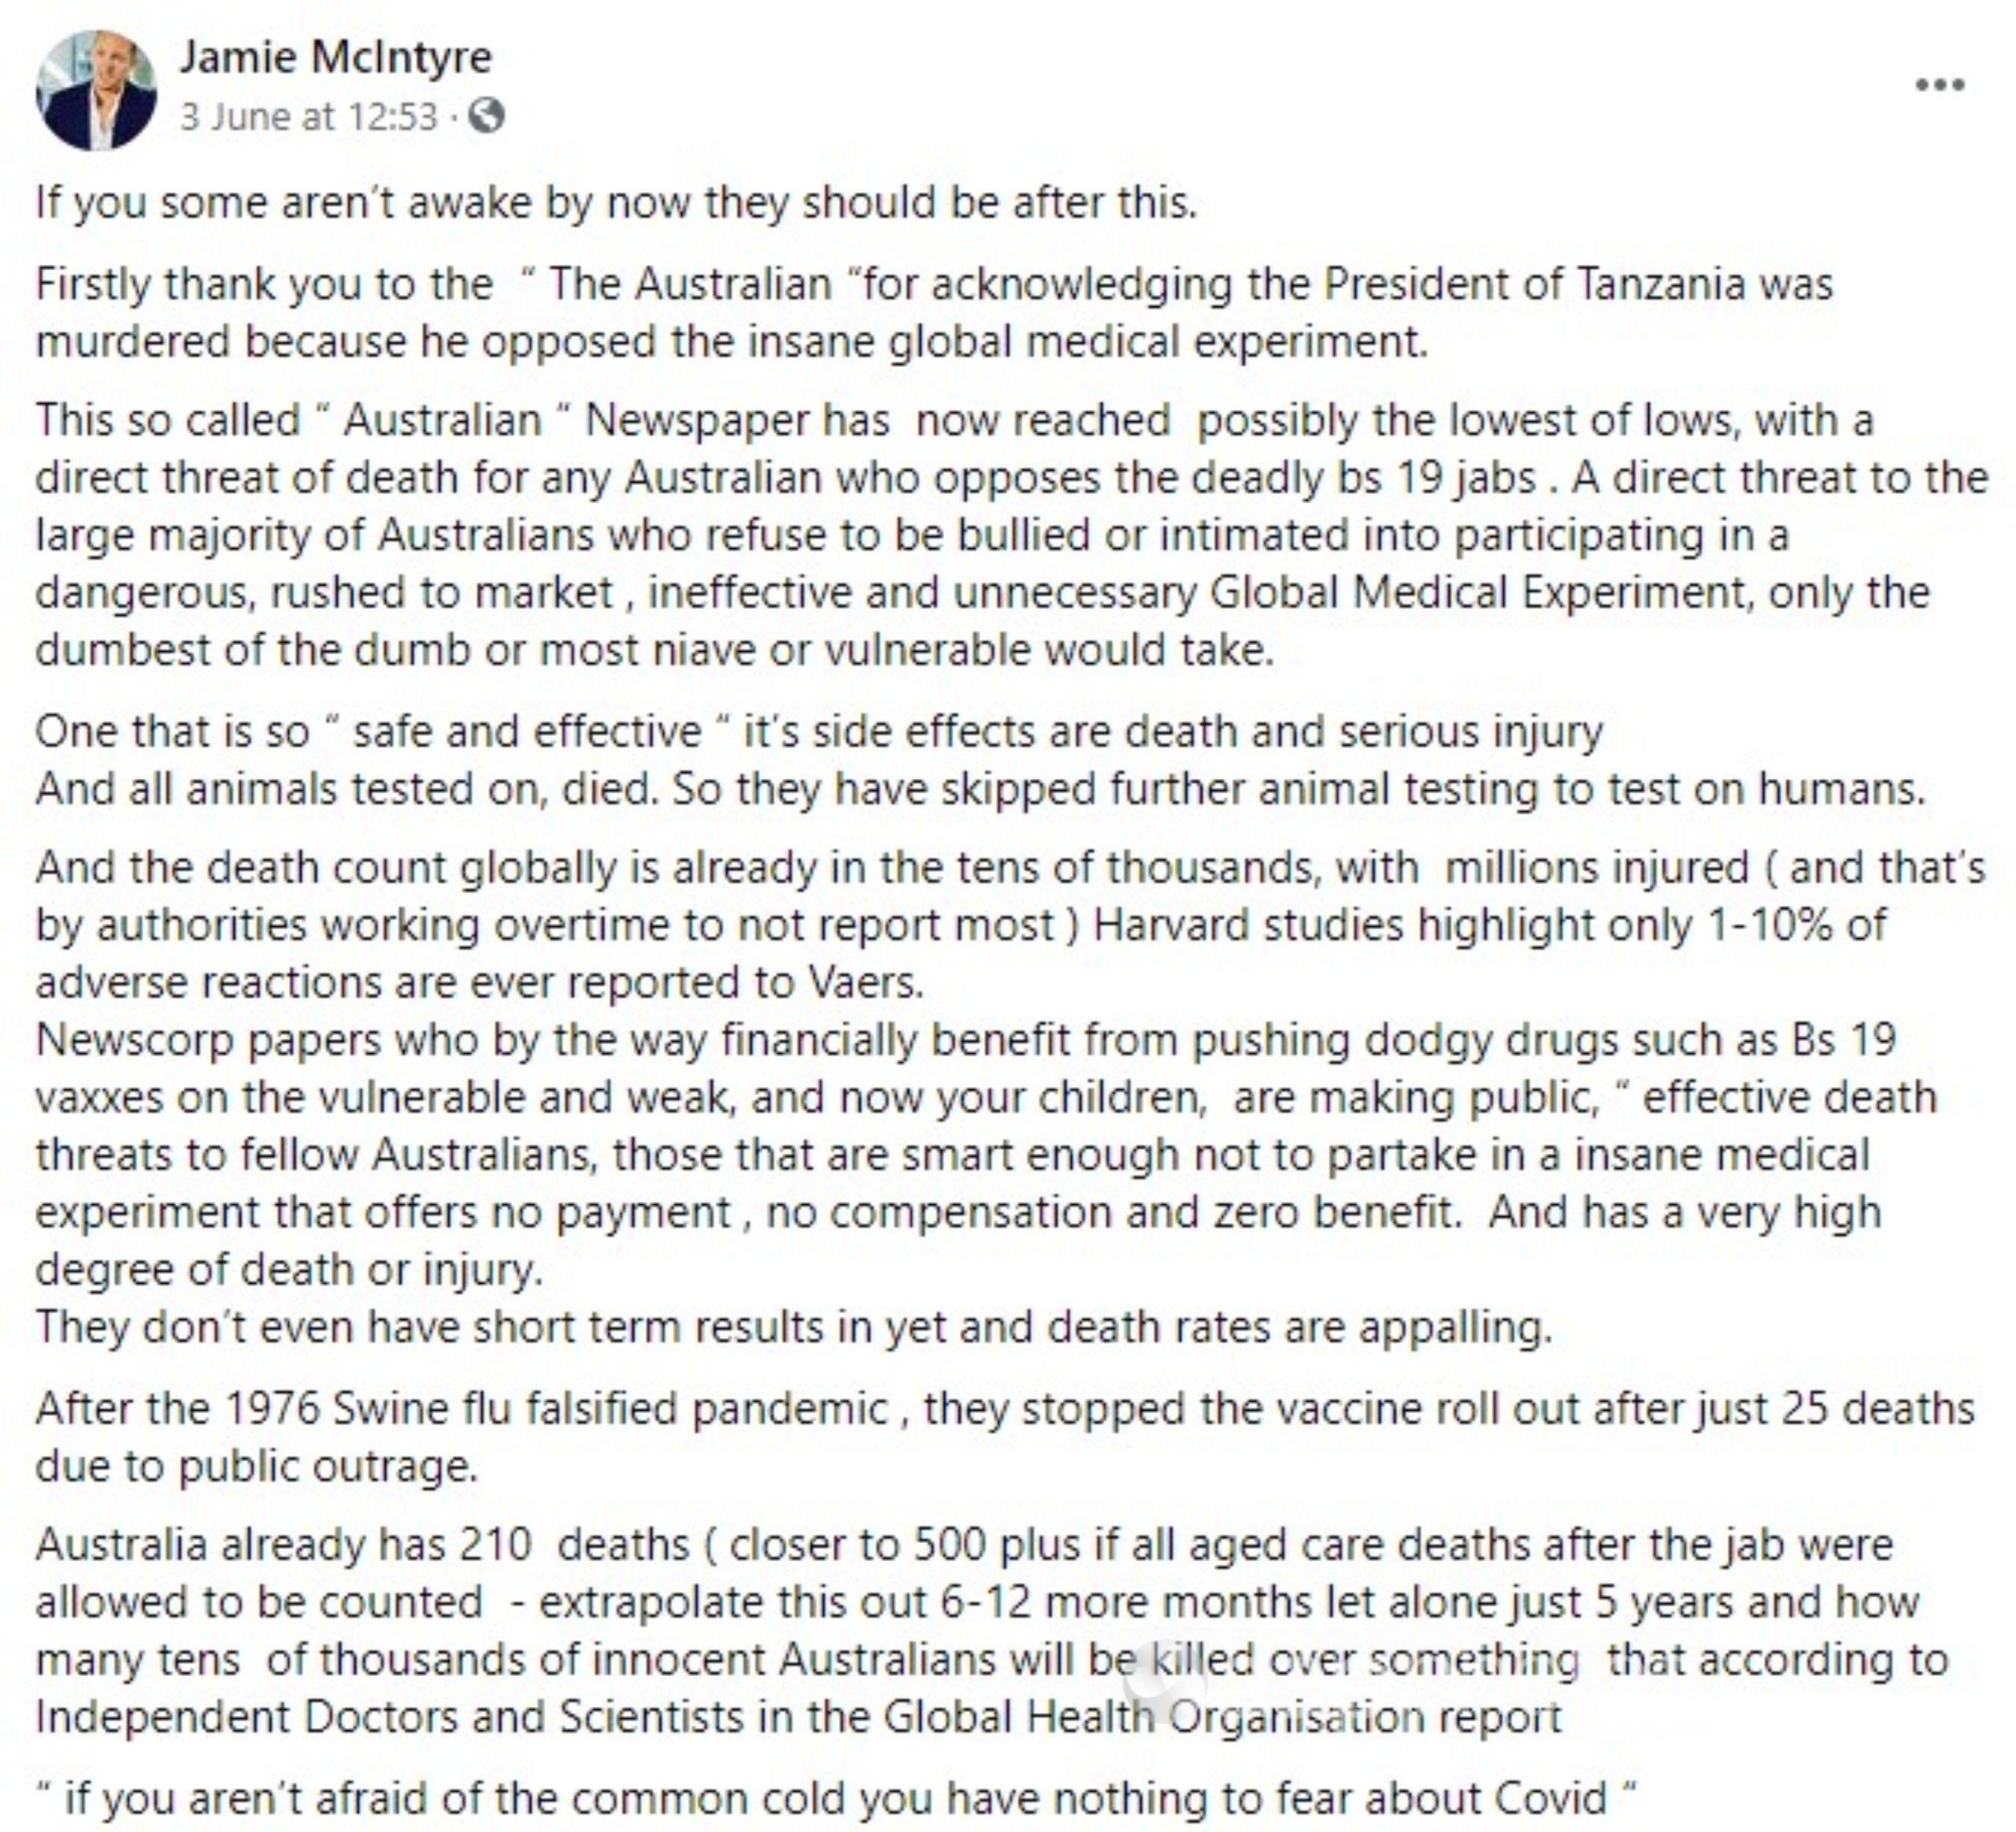 The Facebook post from June 3